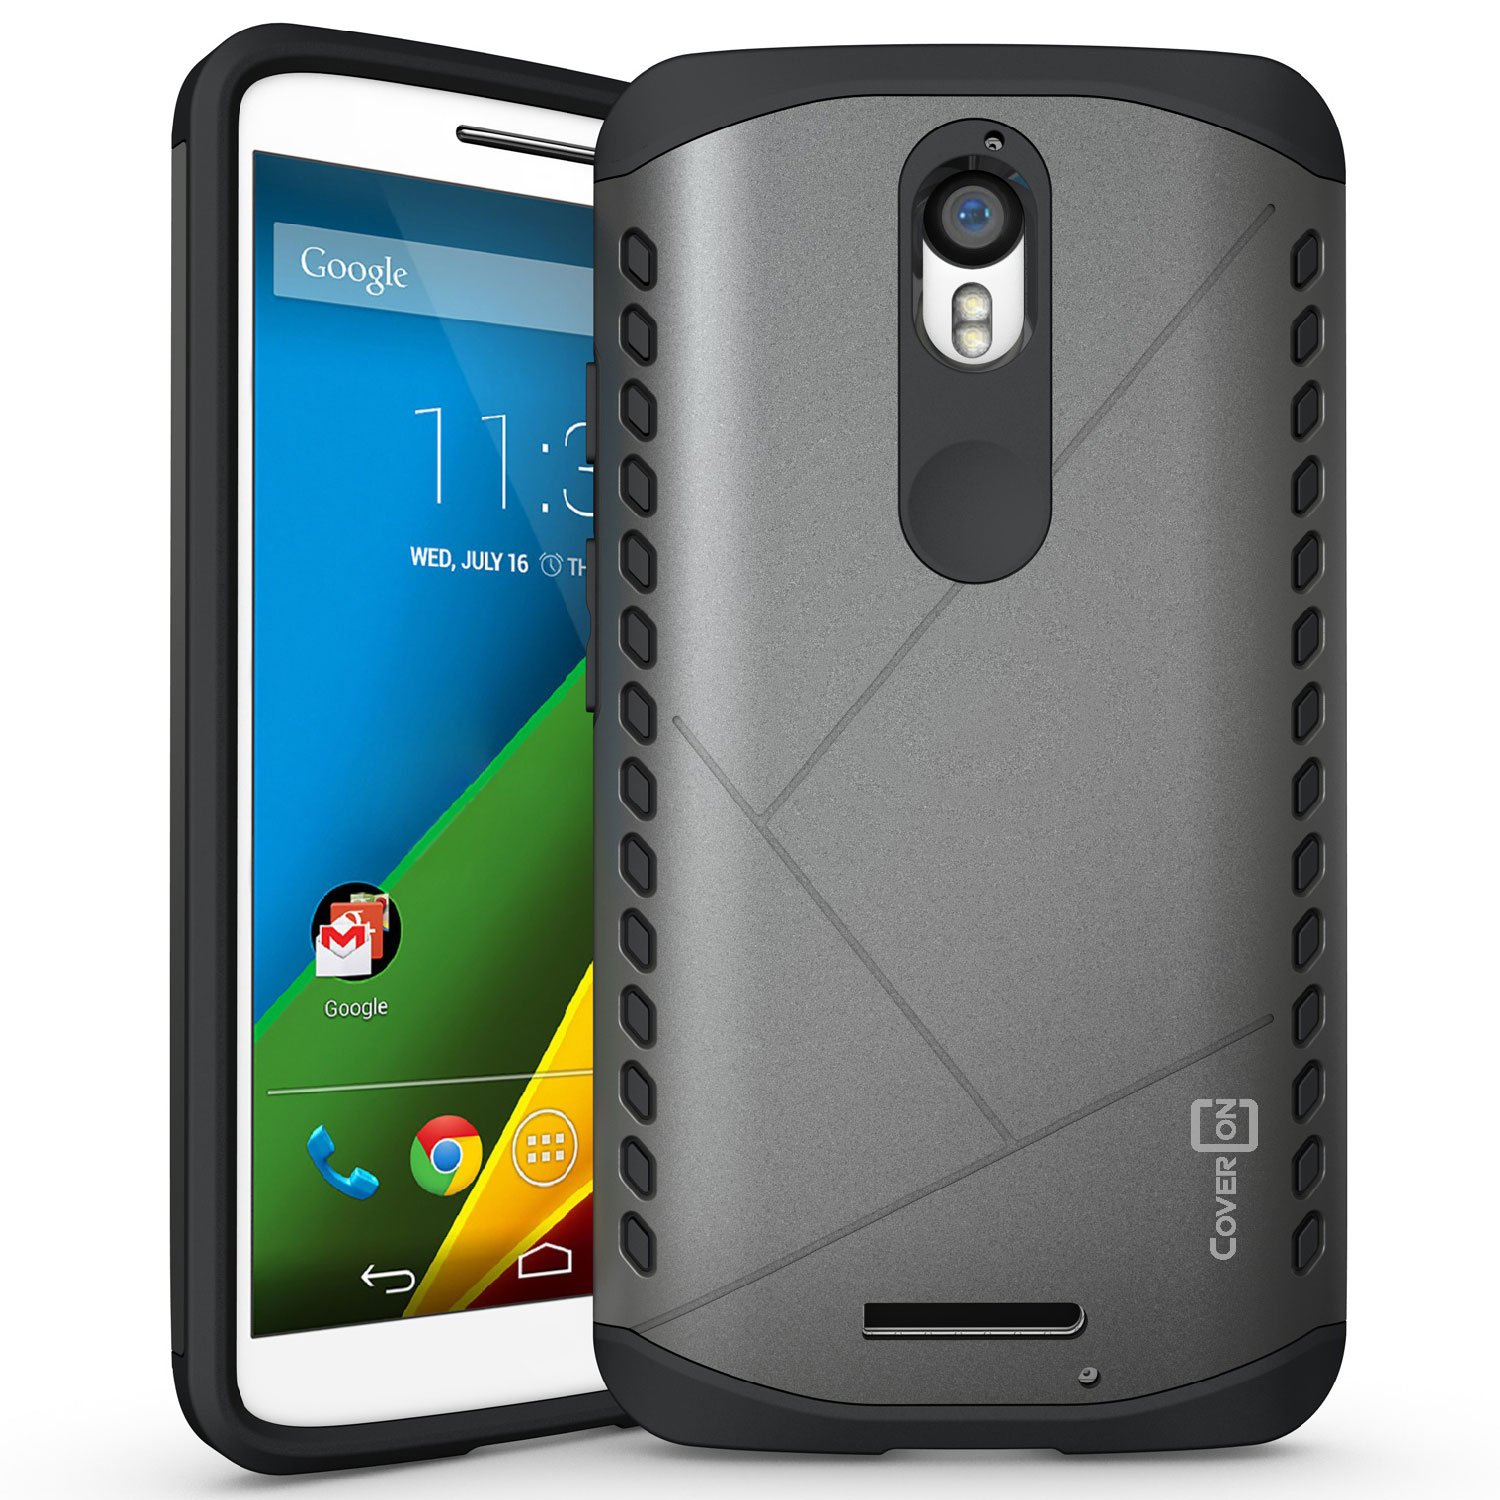 Amazon.com: Droid Turbo 2 Case, CoverON [Paladin Series] Slim Fit Hard Protective Modern Style Phone Case for Motorola Droid Turbo 2 / Moto X Force ...